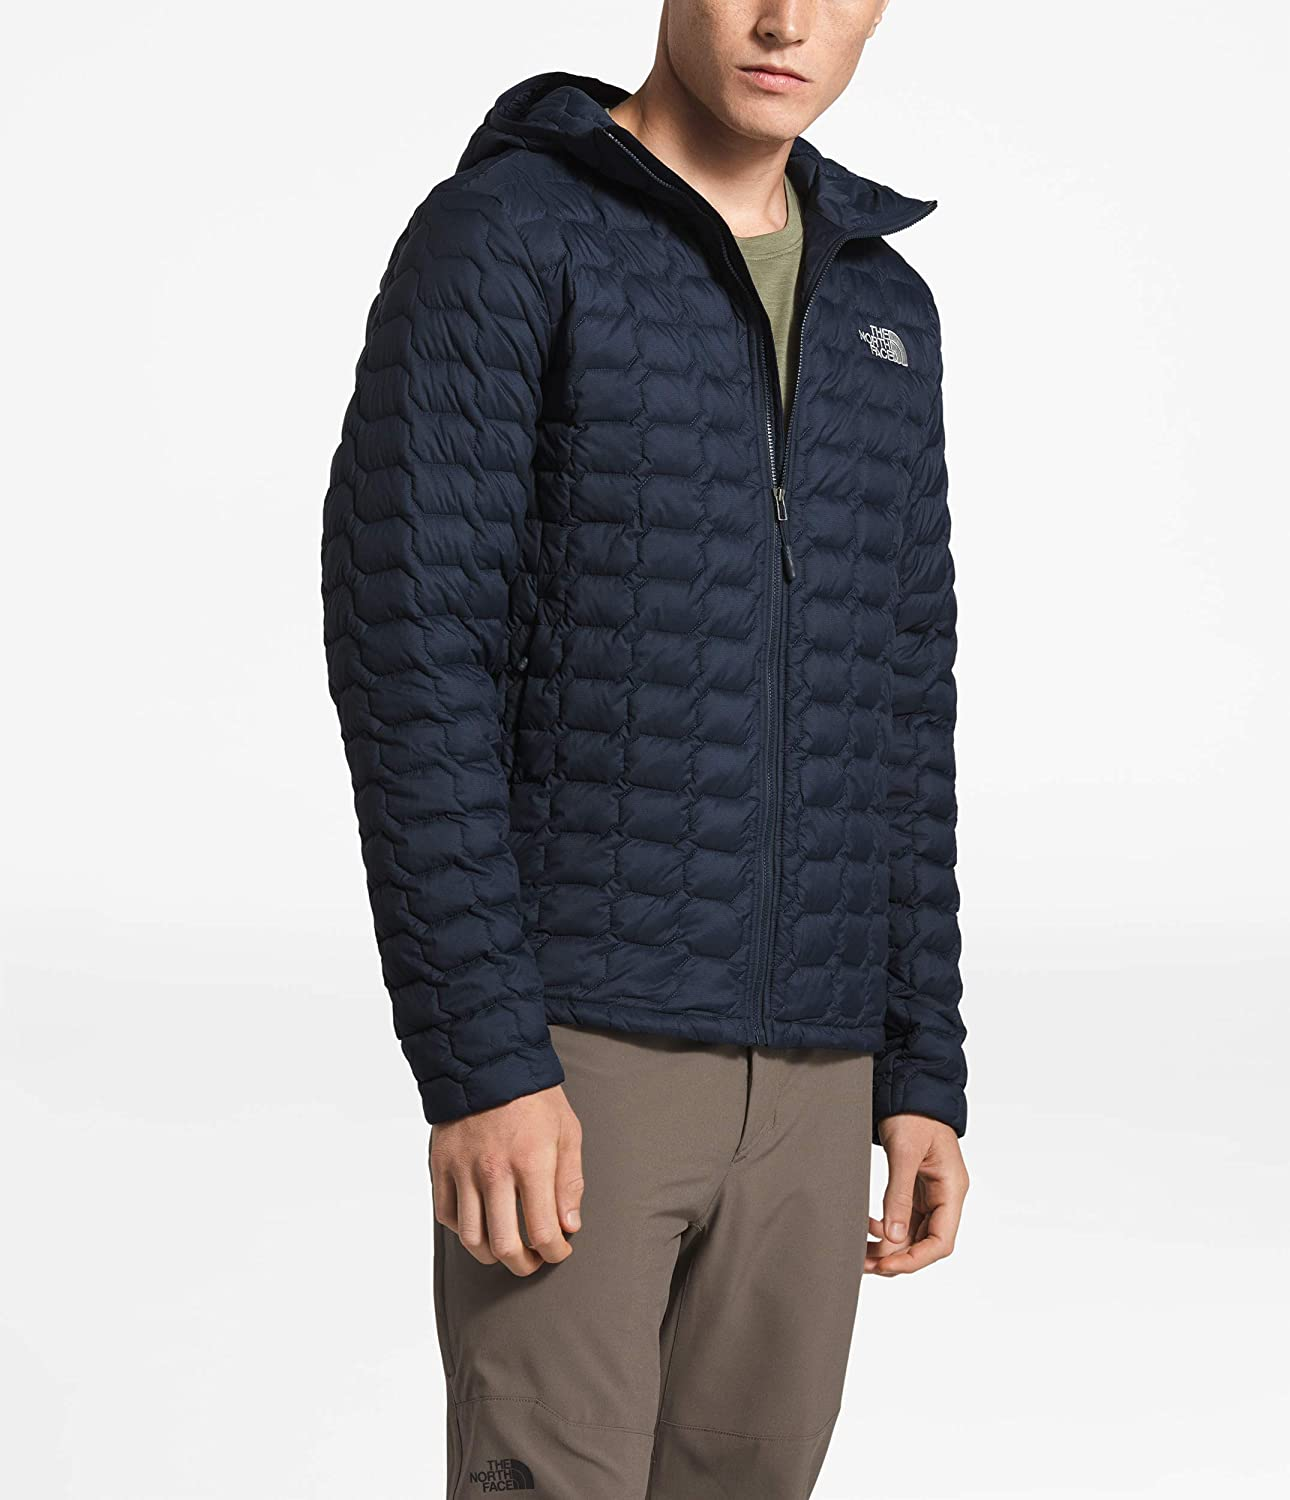 c43b3badd The North Face Men's Thermoball Hoodie